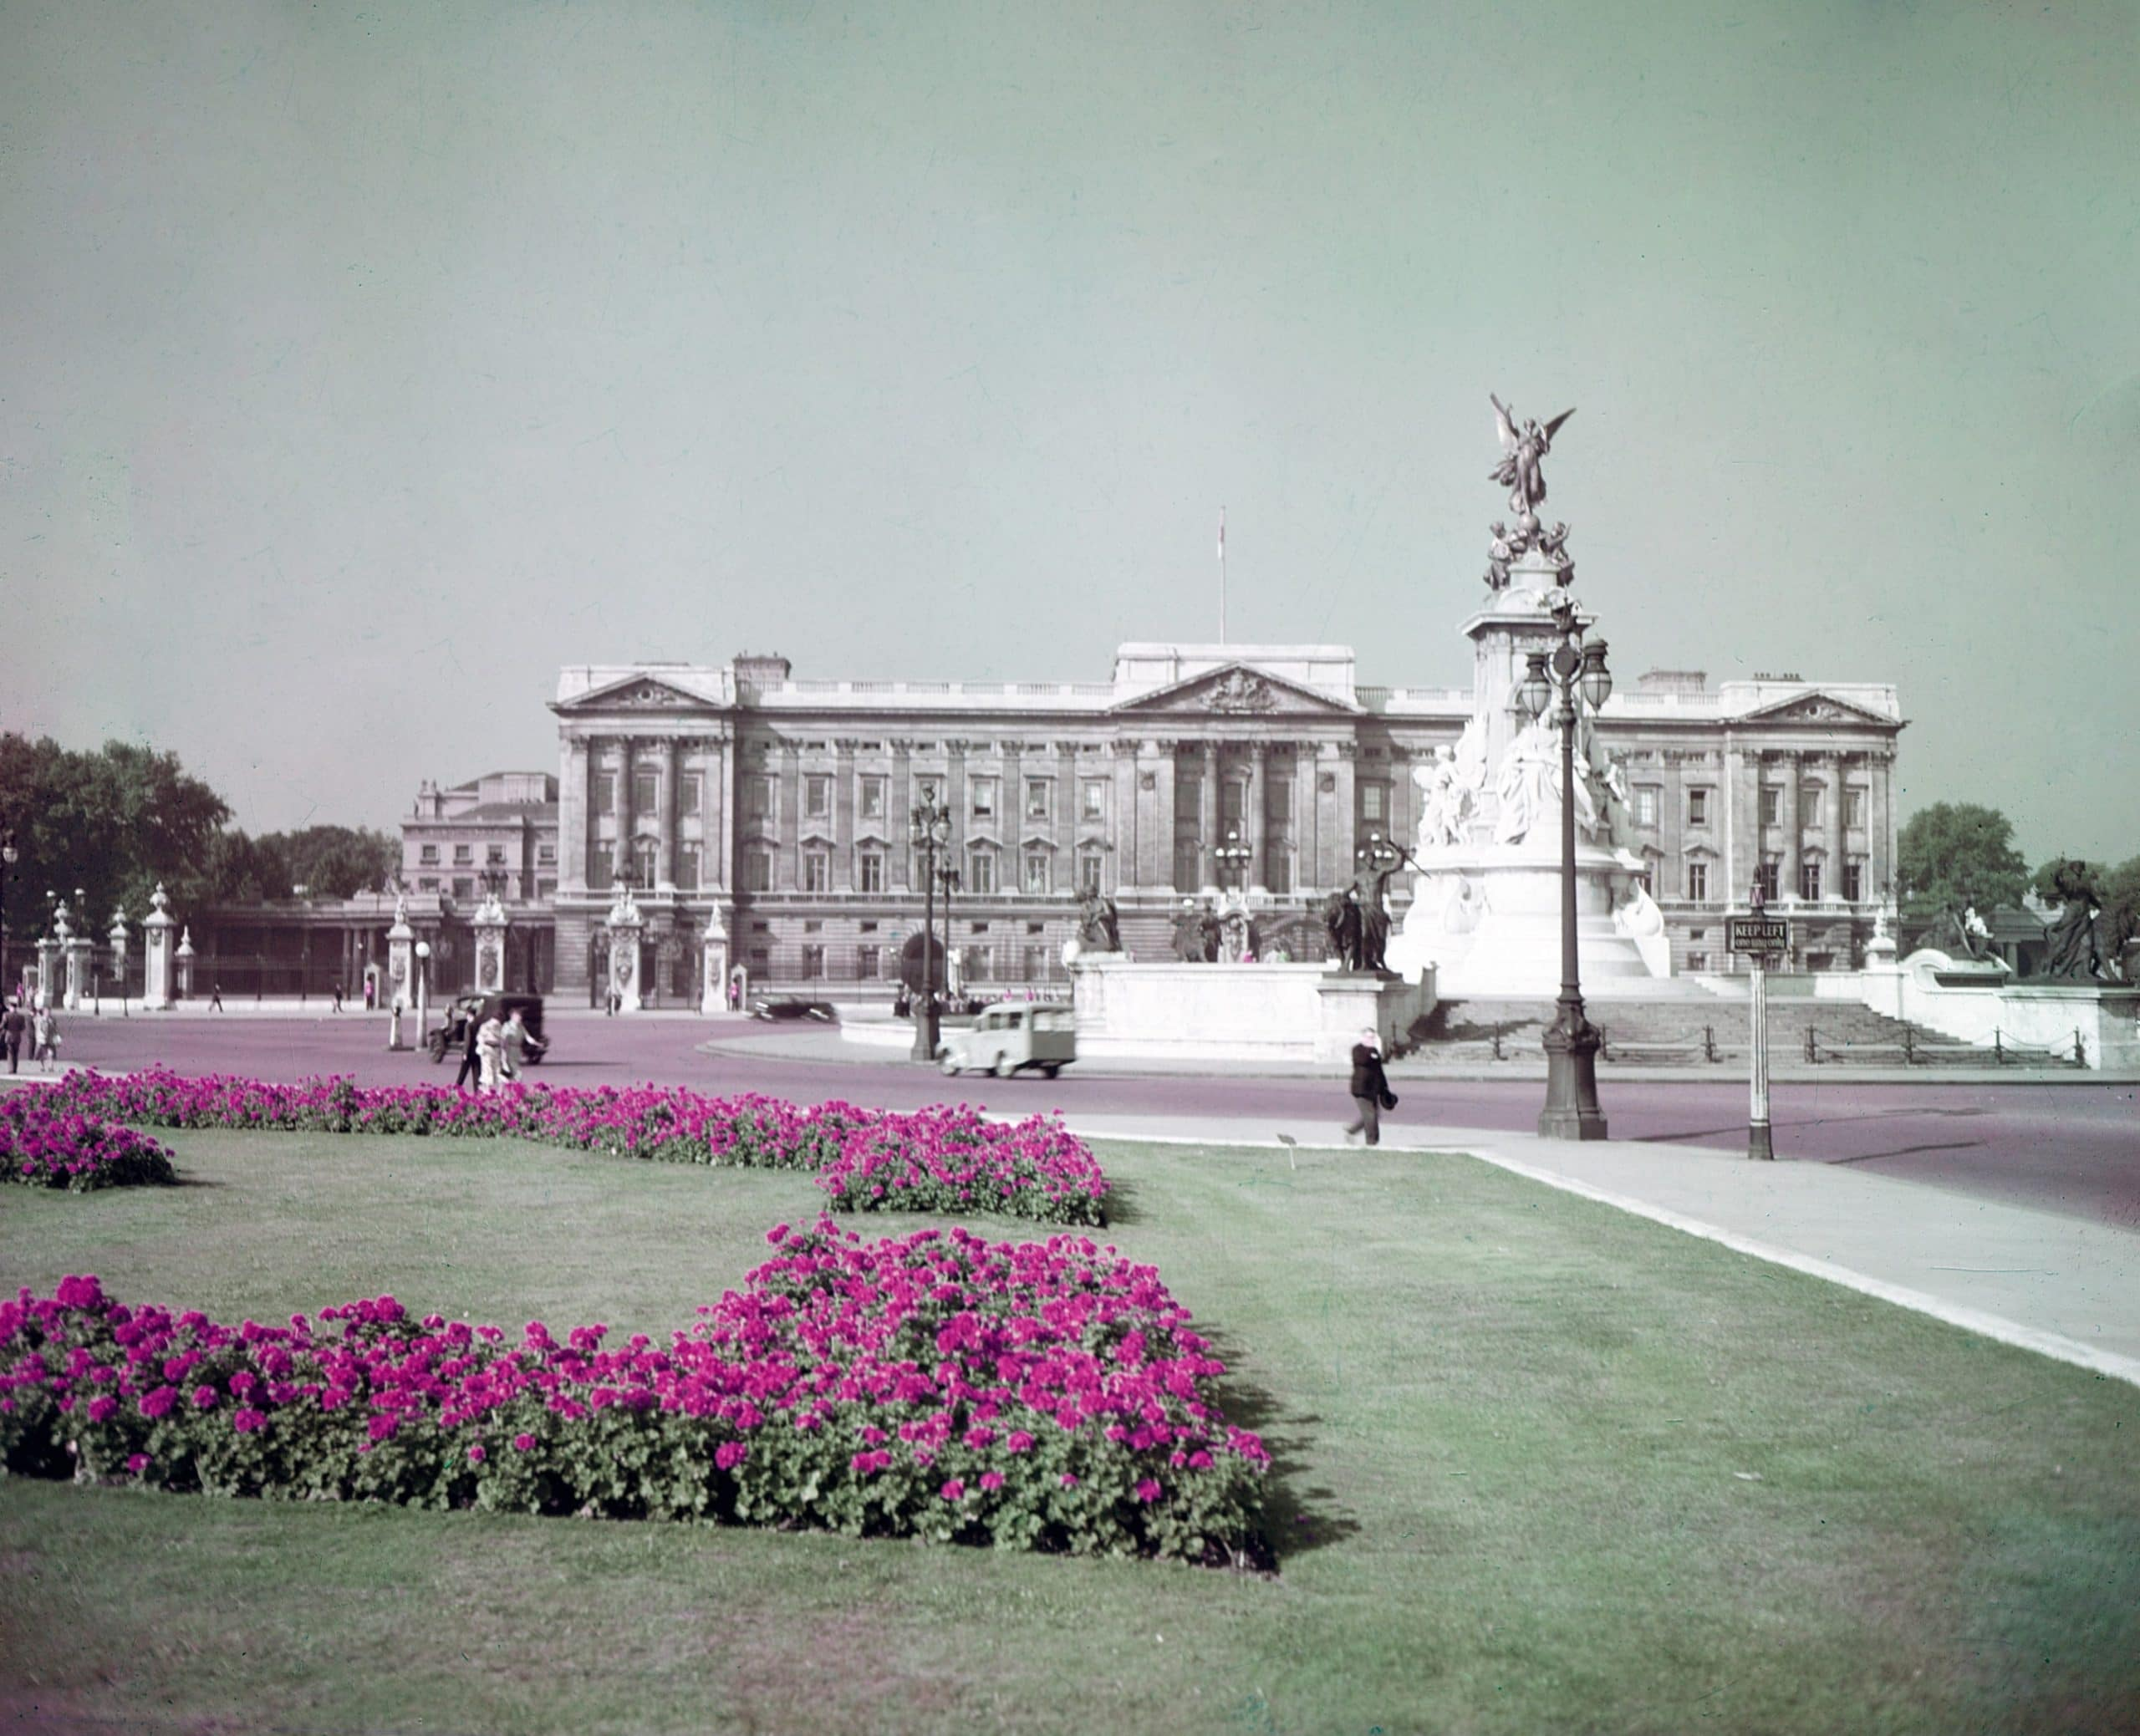 Buckingham Palace, home of Queen Elizabeth II, the Queen of the United Kingdom, circa 1950s